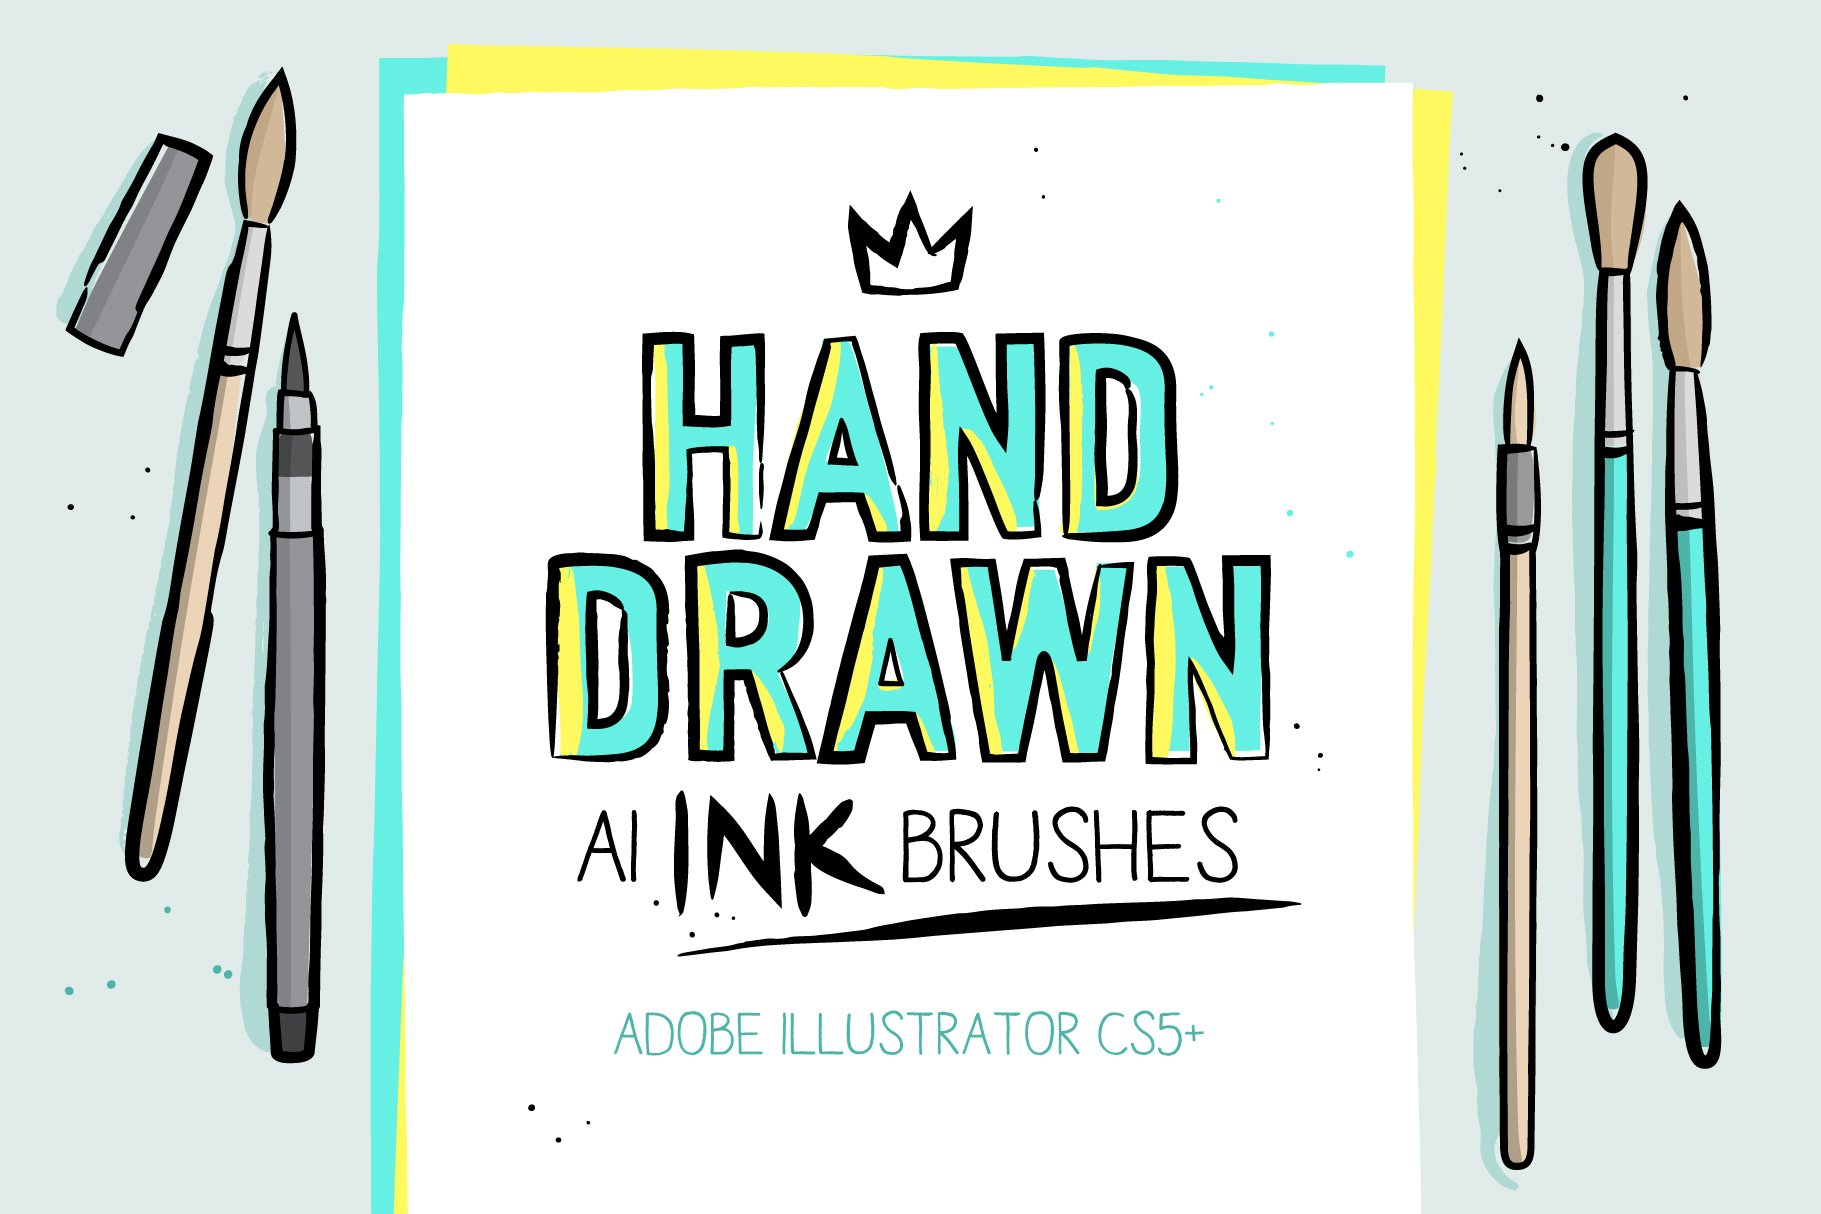 Ai Ink Brushes Creative Market Years Ago How To Edit This Vector Free For Commercial Use With